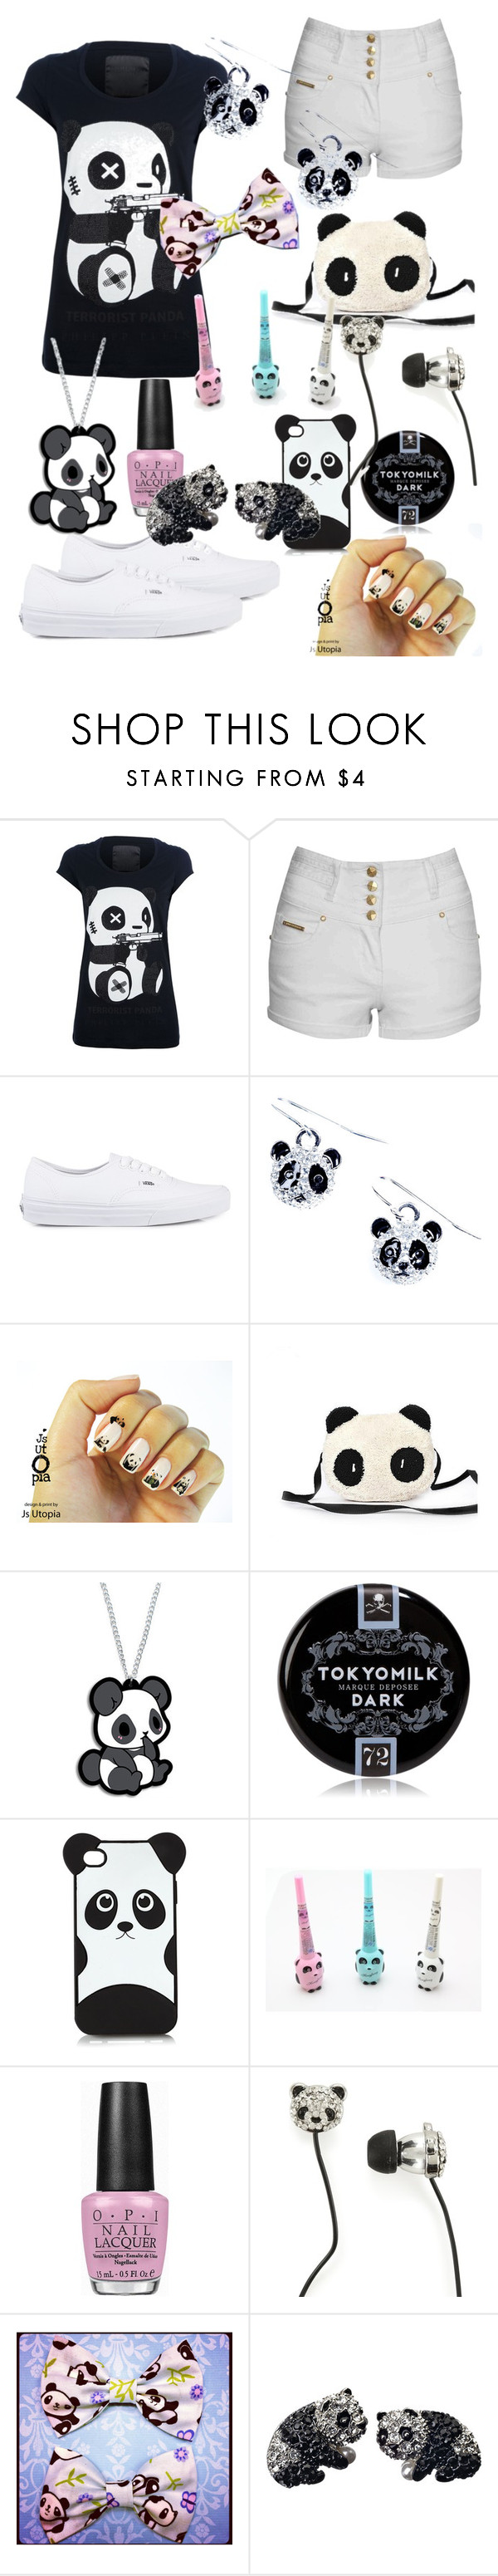 """""""Killer Sparkly Panda ;)"""" by onemiracleatatime ❤ liked on Polyvore featuring Philipp Plein, Jane Norman, Vans, TokyoMilk, Panda, OPI, P.S. from Aéropostale and Andrew Hamilton Crawford"""